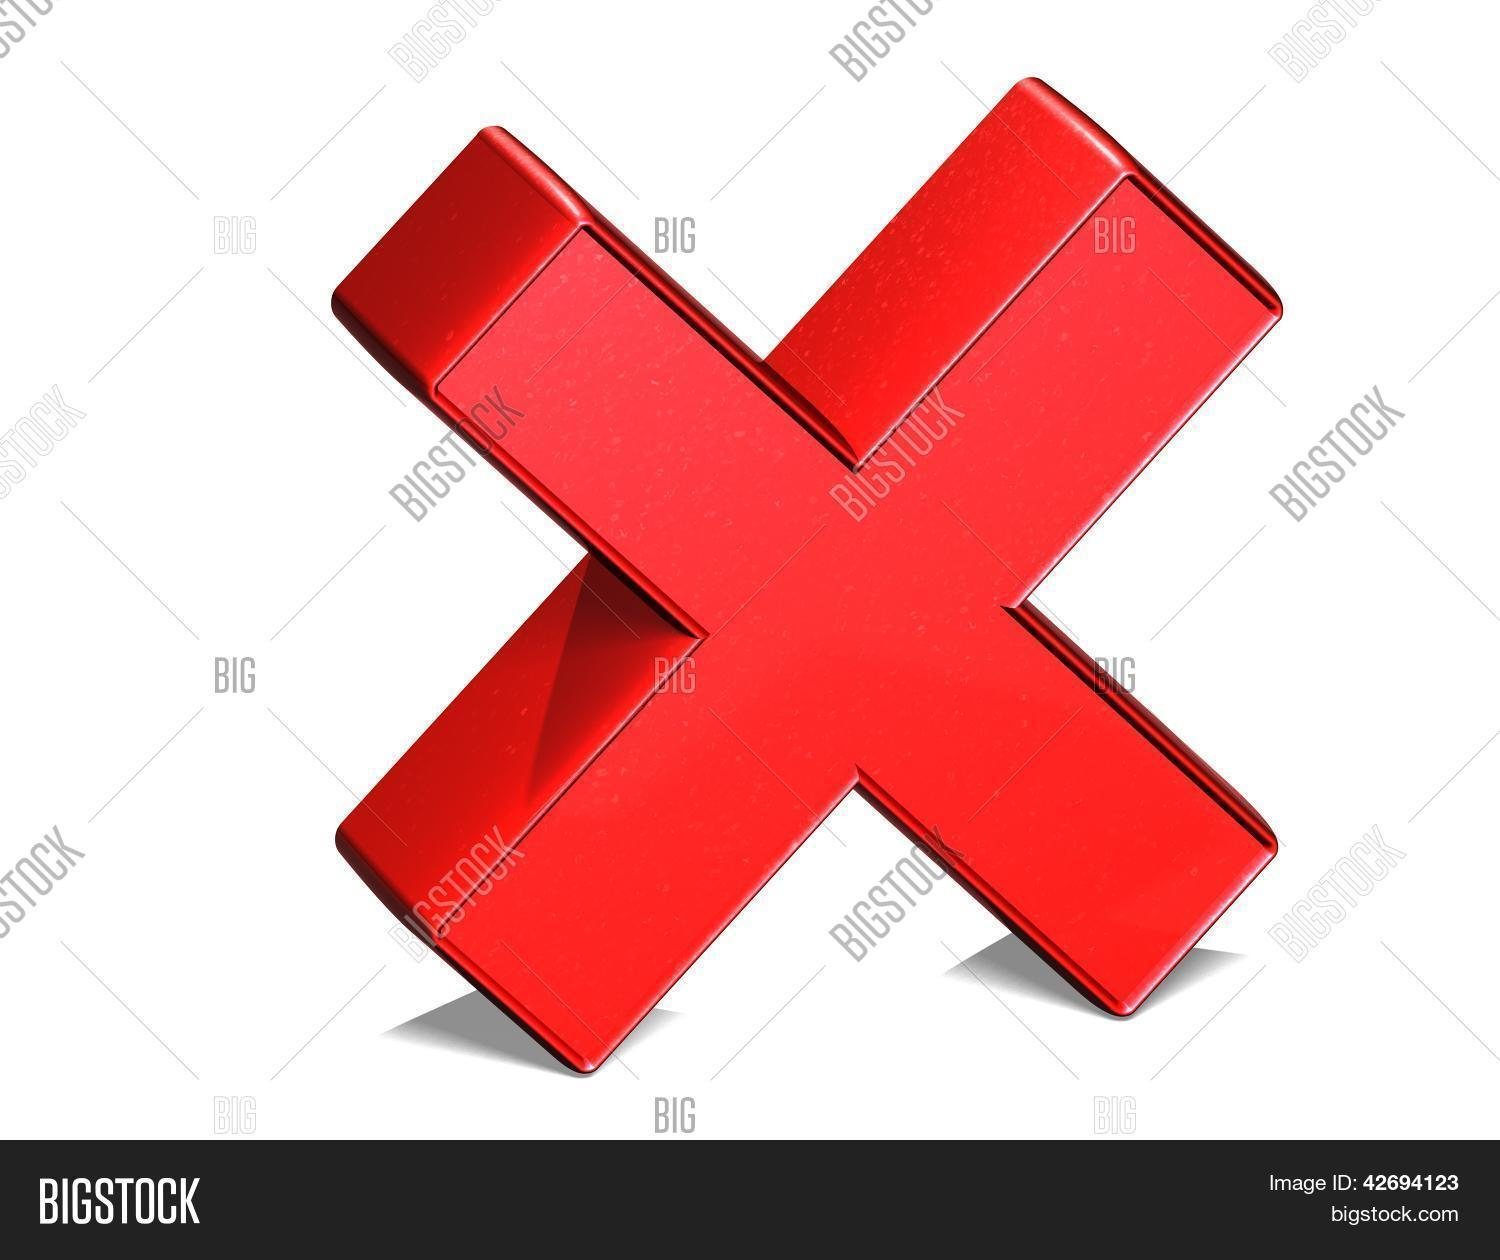 3d,abstract,background,beautiful,brushed,capital,character,collection,color,concept,conceptual,creative,creativity,design,different,drawing,font,grunge,icon,idea,illustration,inspiration,iron,isolated,learn,letter,object,red,render,set,shape,sign,single,solution,strategy,stroke,success,symbol,team,text,textured,think,type,typescript,vision,wariety,white,word,x